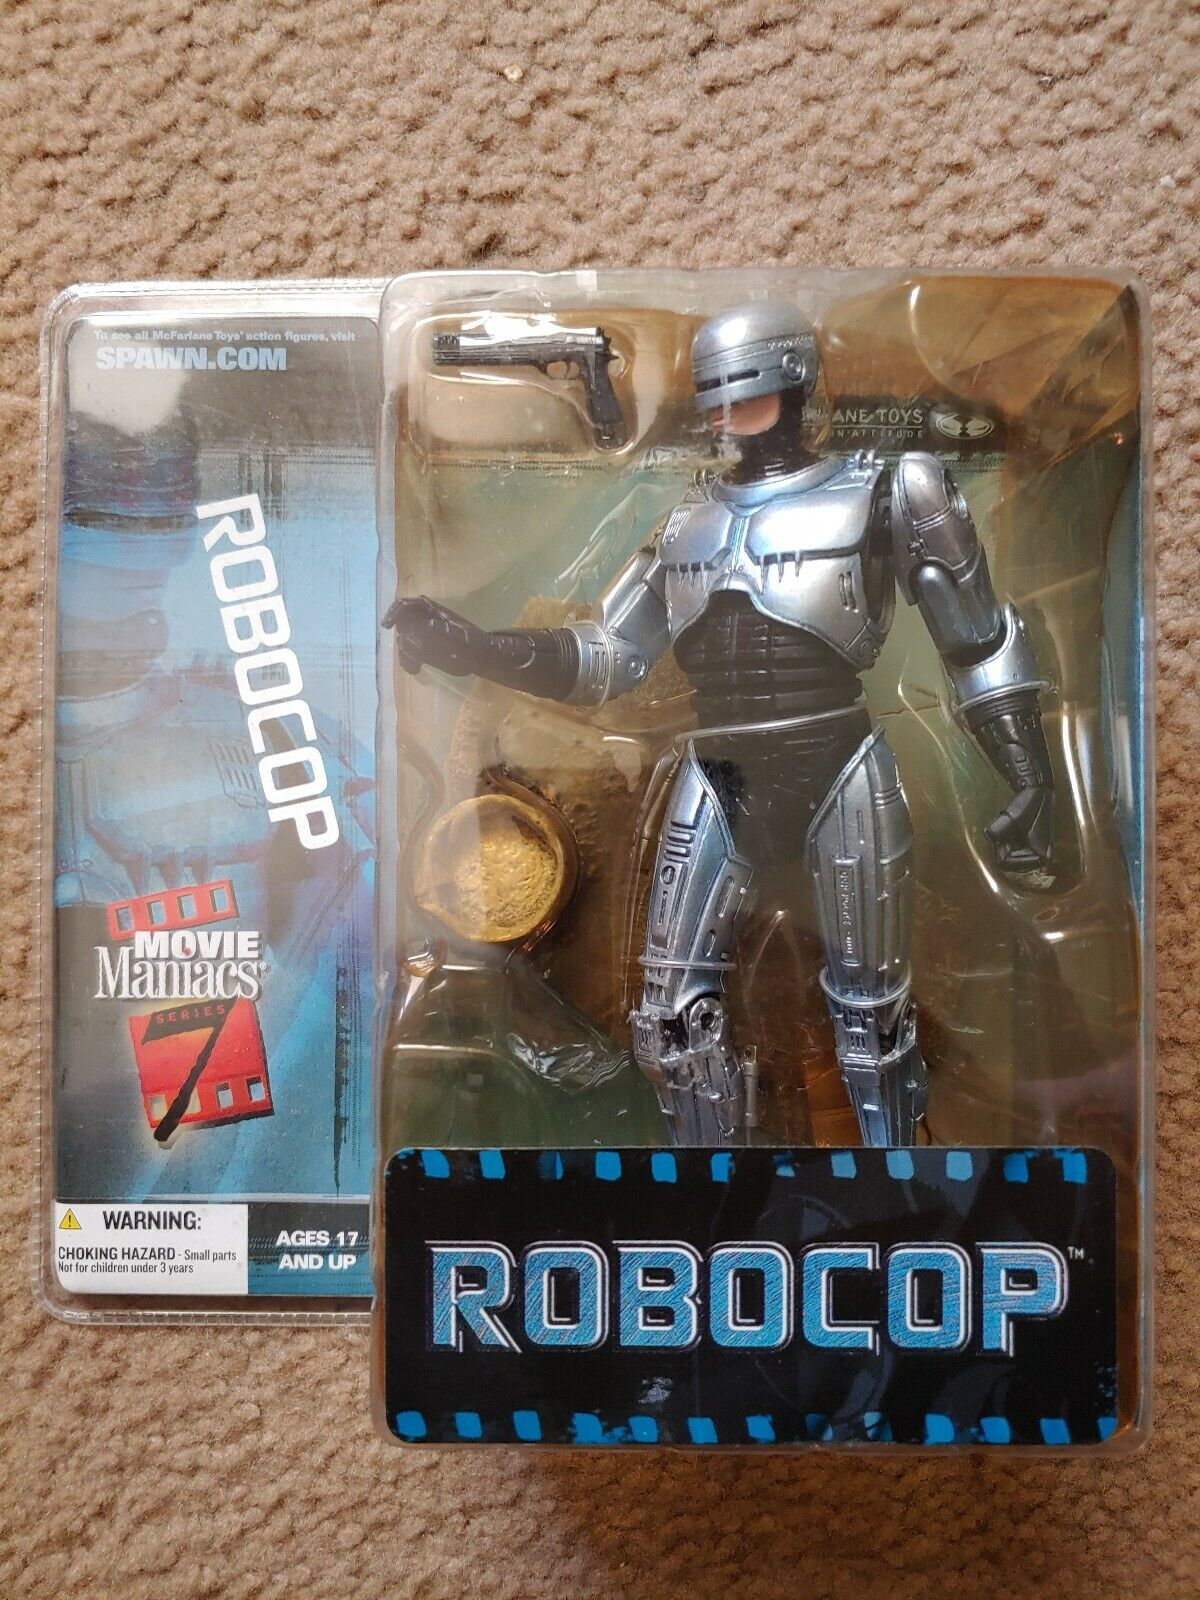 McFarlane  giocattoli RoboCop Movie uomoiacs Series 7 2004. With Issues read below  omaggi allo stadio